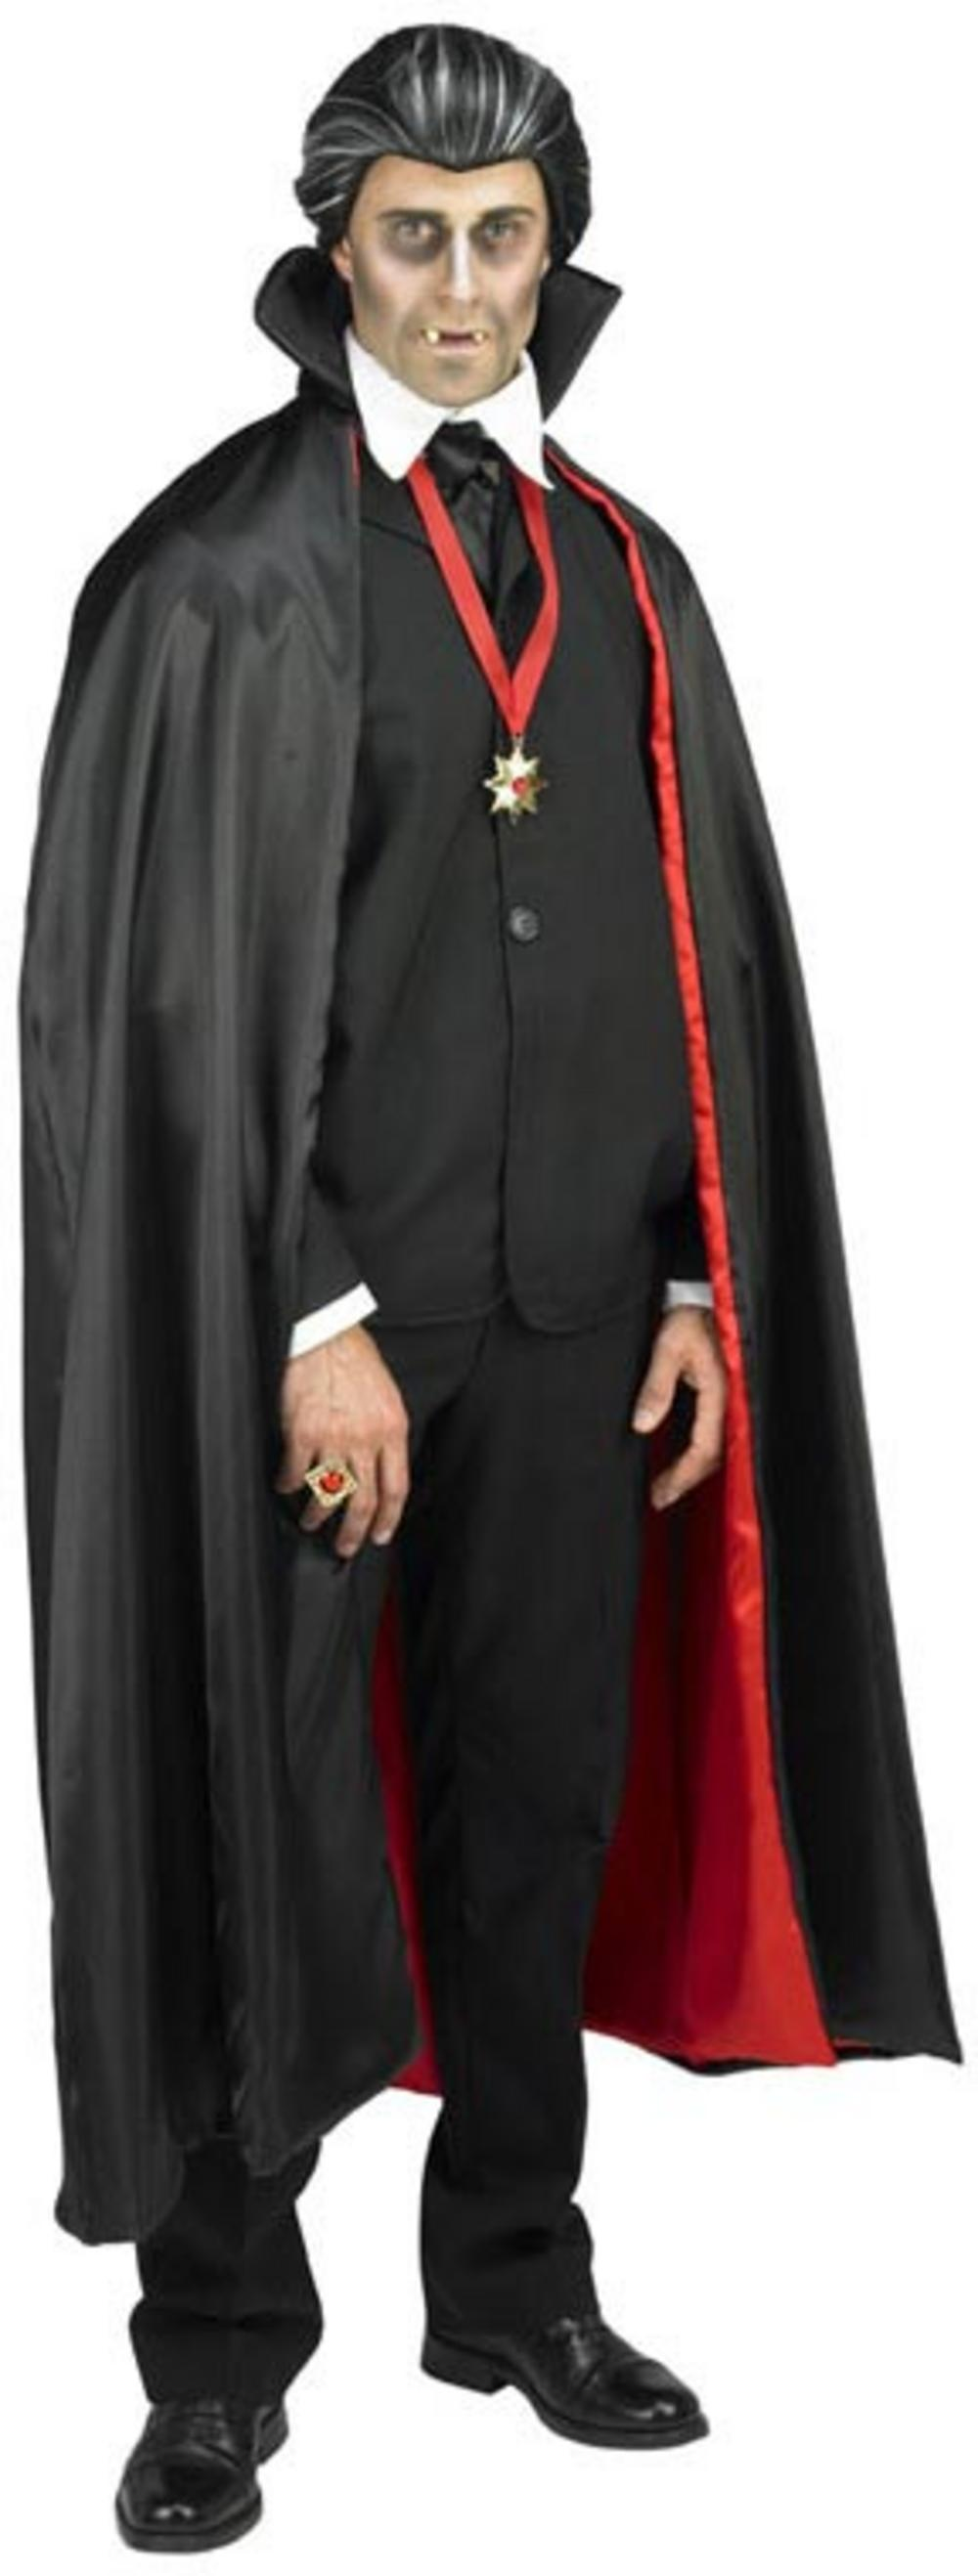 Deluxe vampire fancy dress costume set. Kasstino Black Red Vampire Cape Reversible Dracula Devil Cloak Fancy Adult Costume Masquerade Party Halloween. by Kasstino. £ + £ delivery. out of 5 stars HENBRANDT Reversible Vampire Cape Fancy Dress Costume Adult One Size Fits Most.